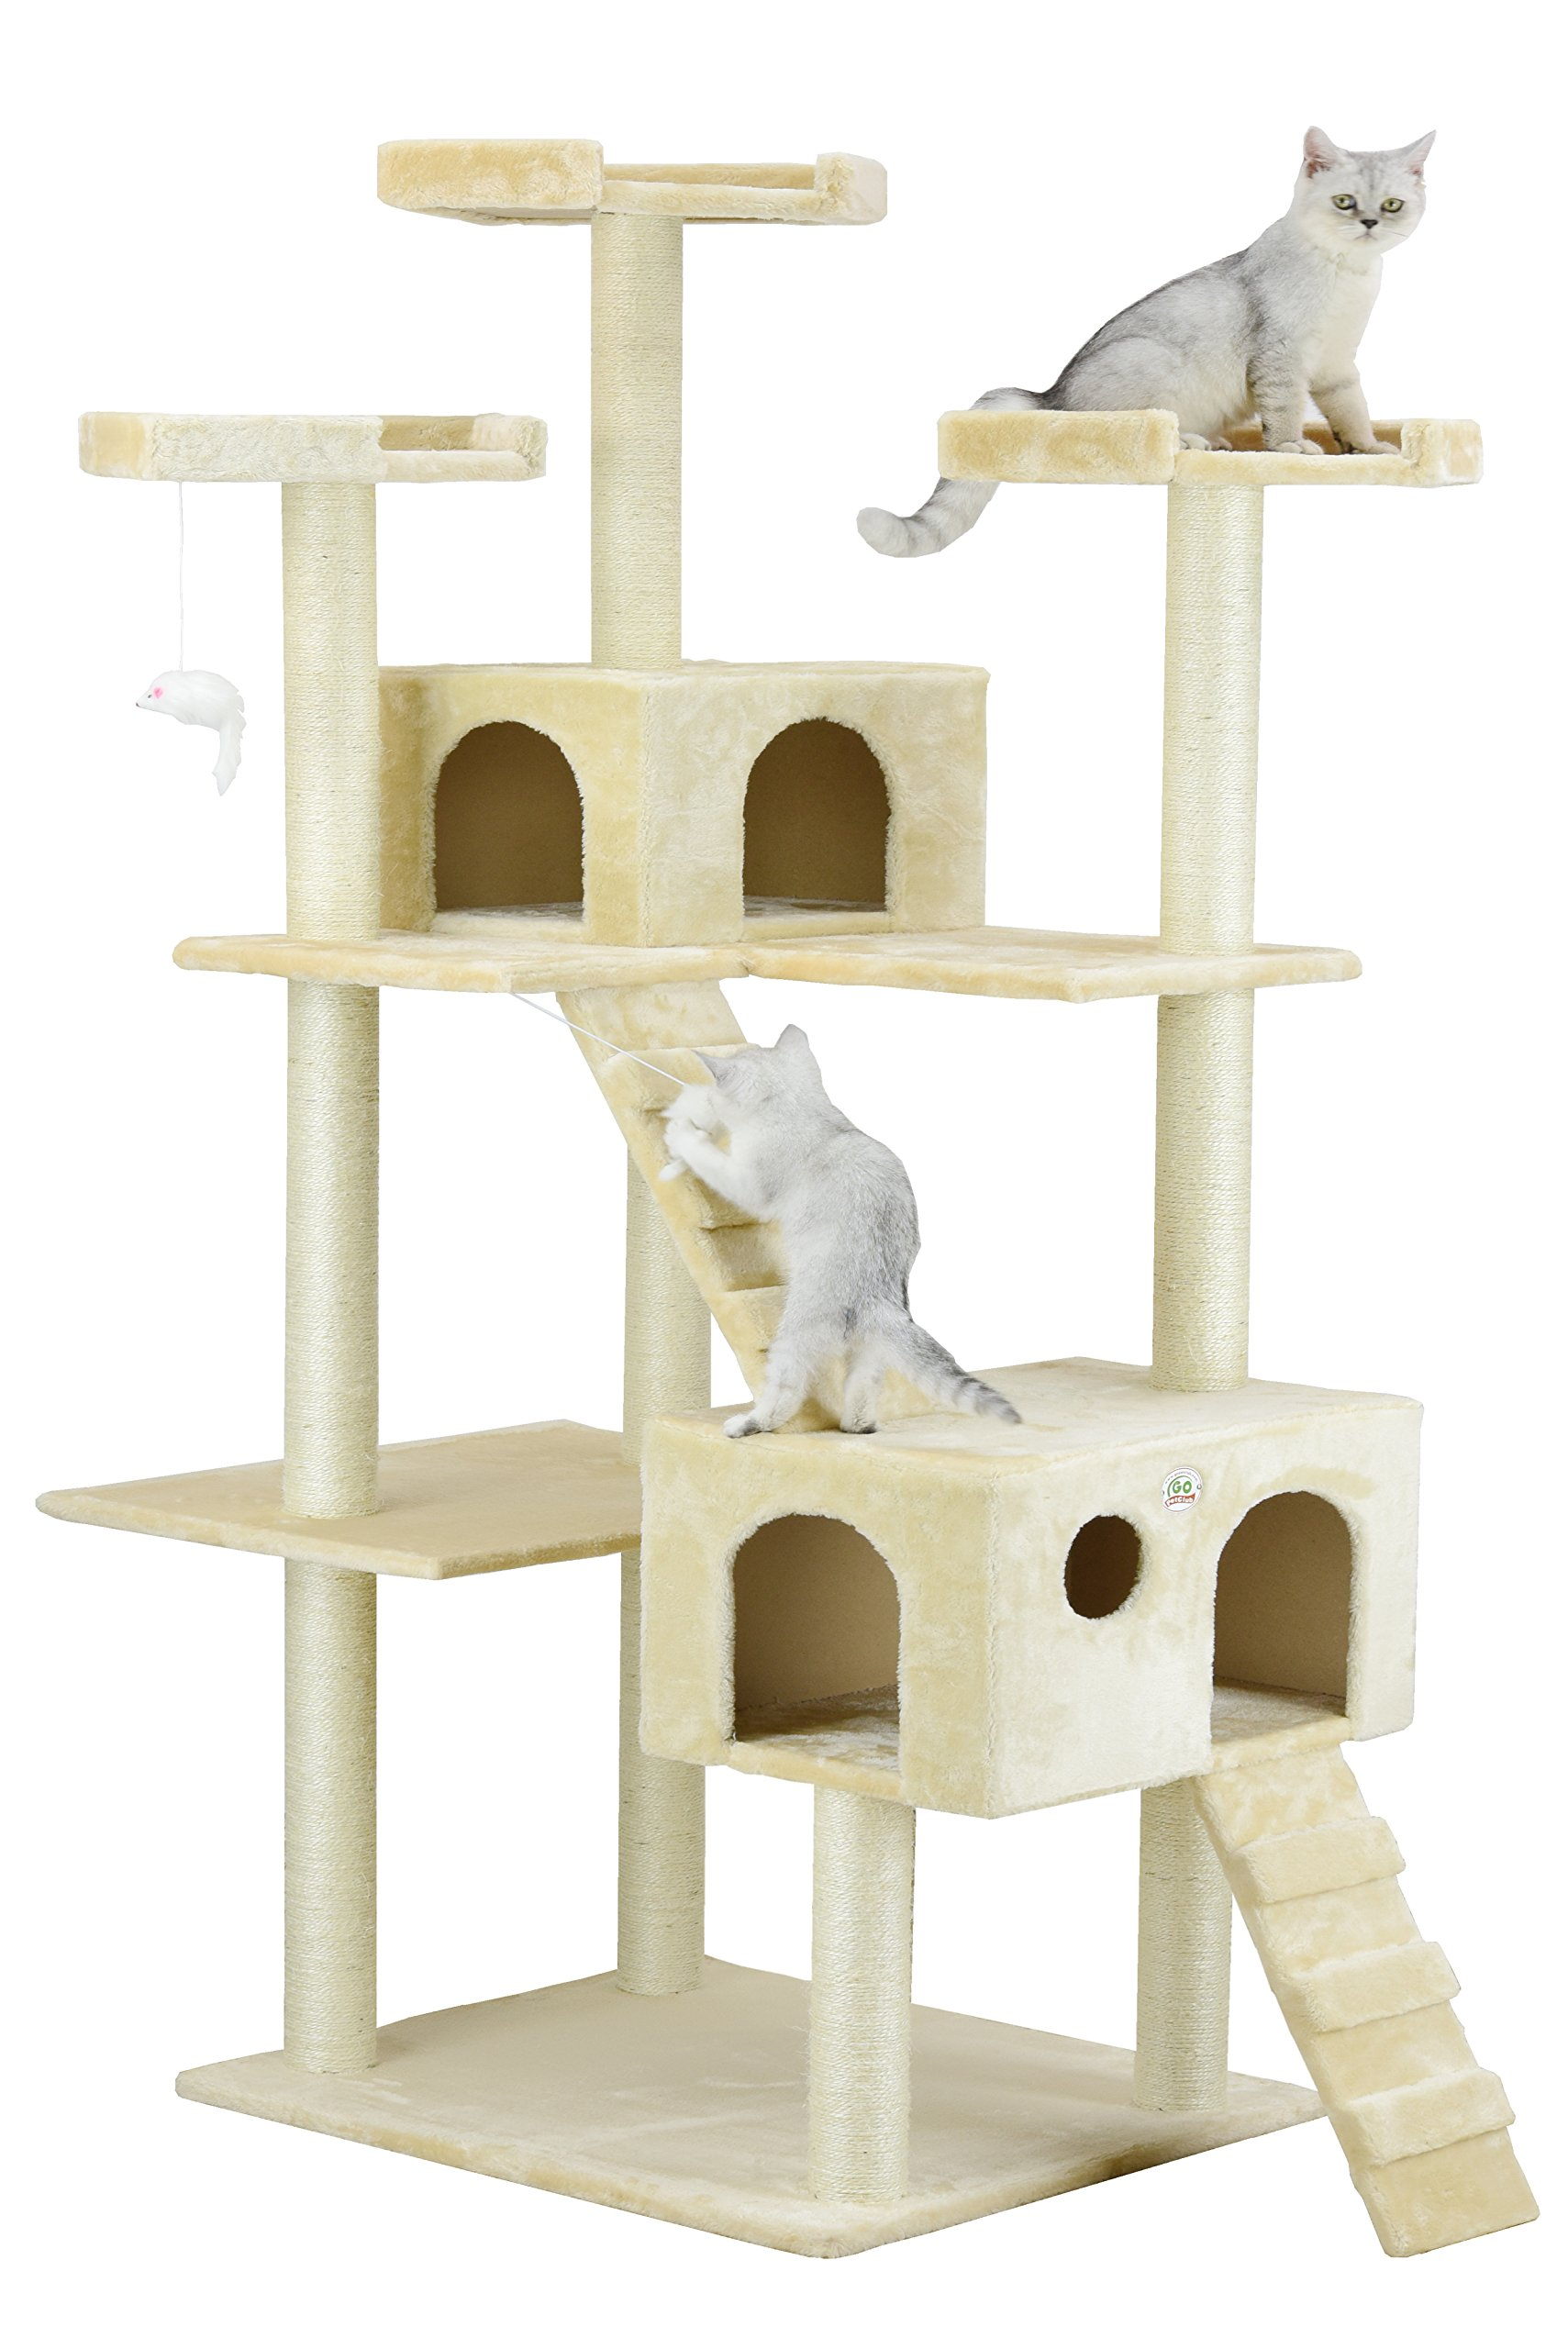 Go Pet Club Cat Tree, 50W x 26L x 72H, Beige by Go Pet Club